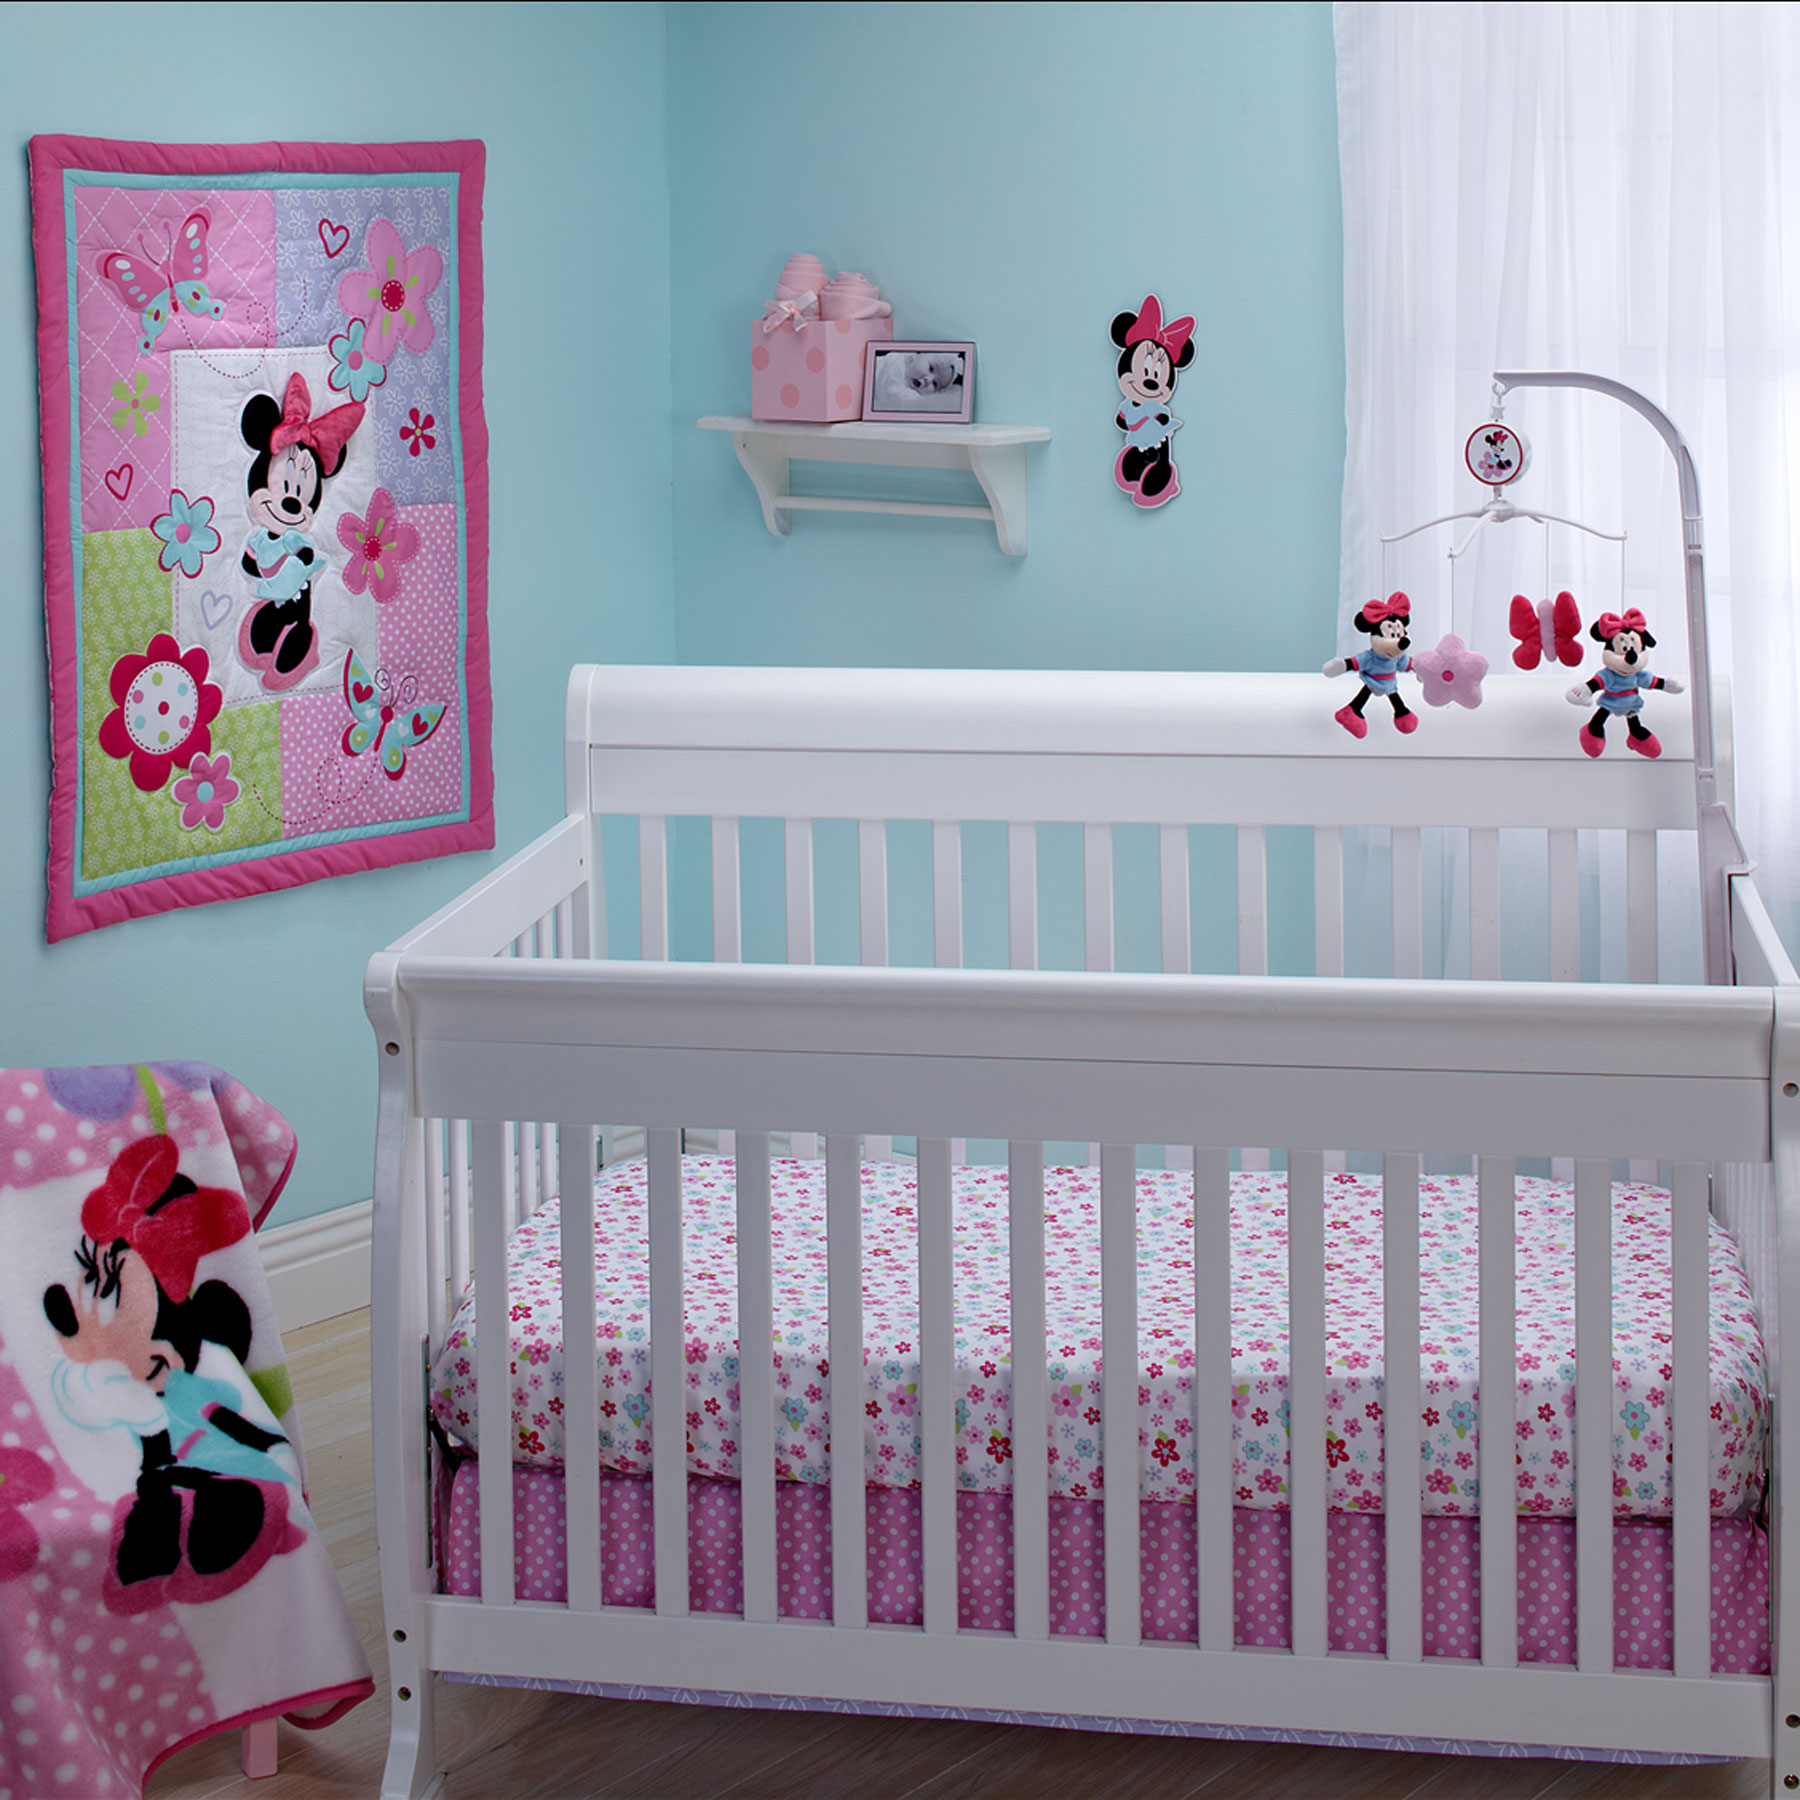 Sears Baby Bedding | Disney Baby Bedding | Lion King Nursery Set